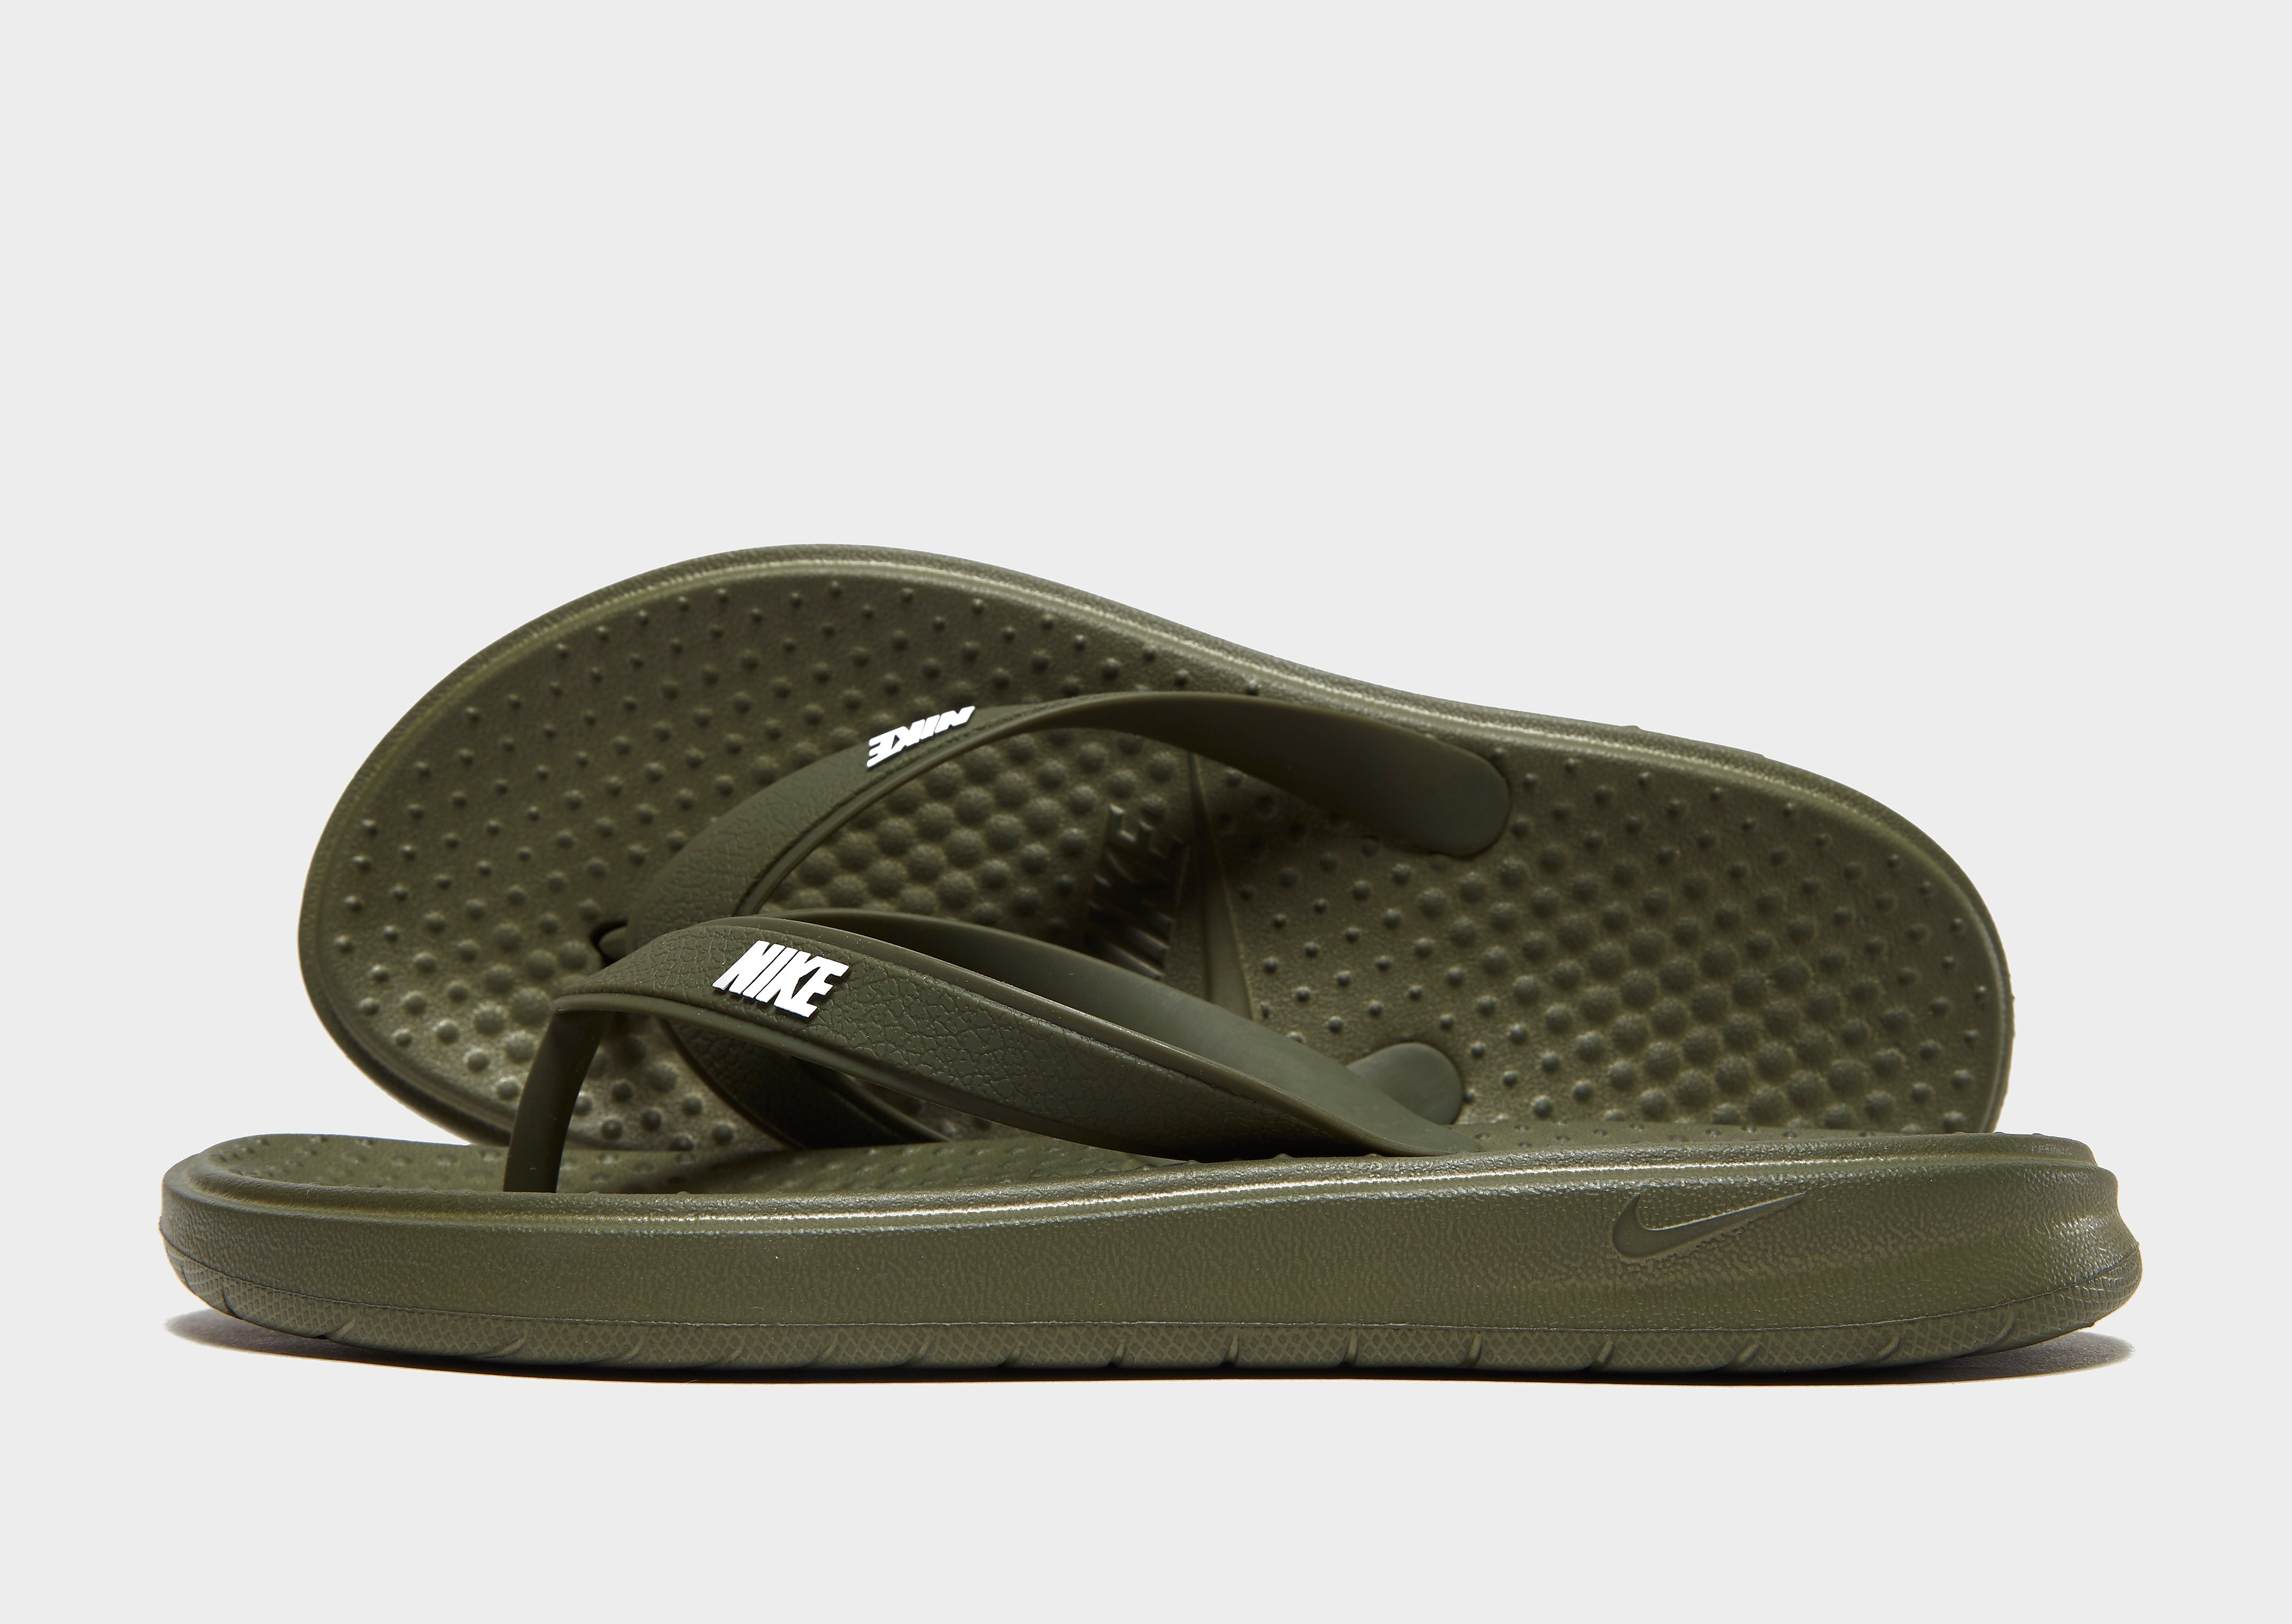 Nike chanclas Solay